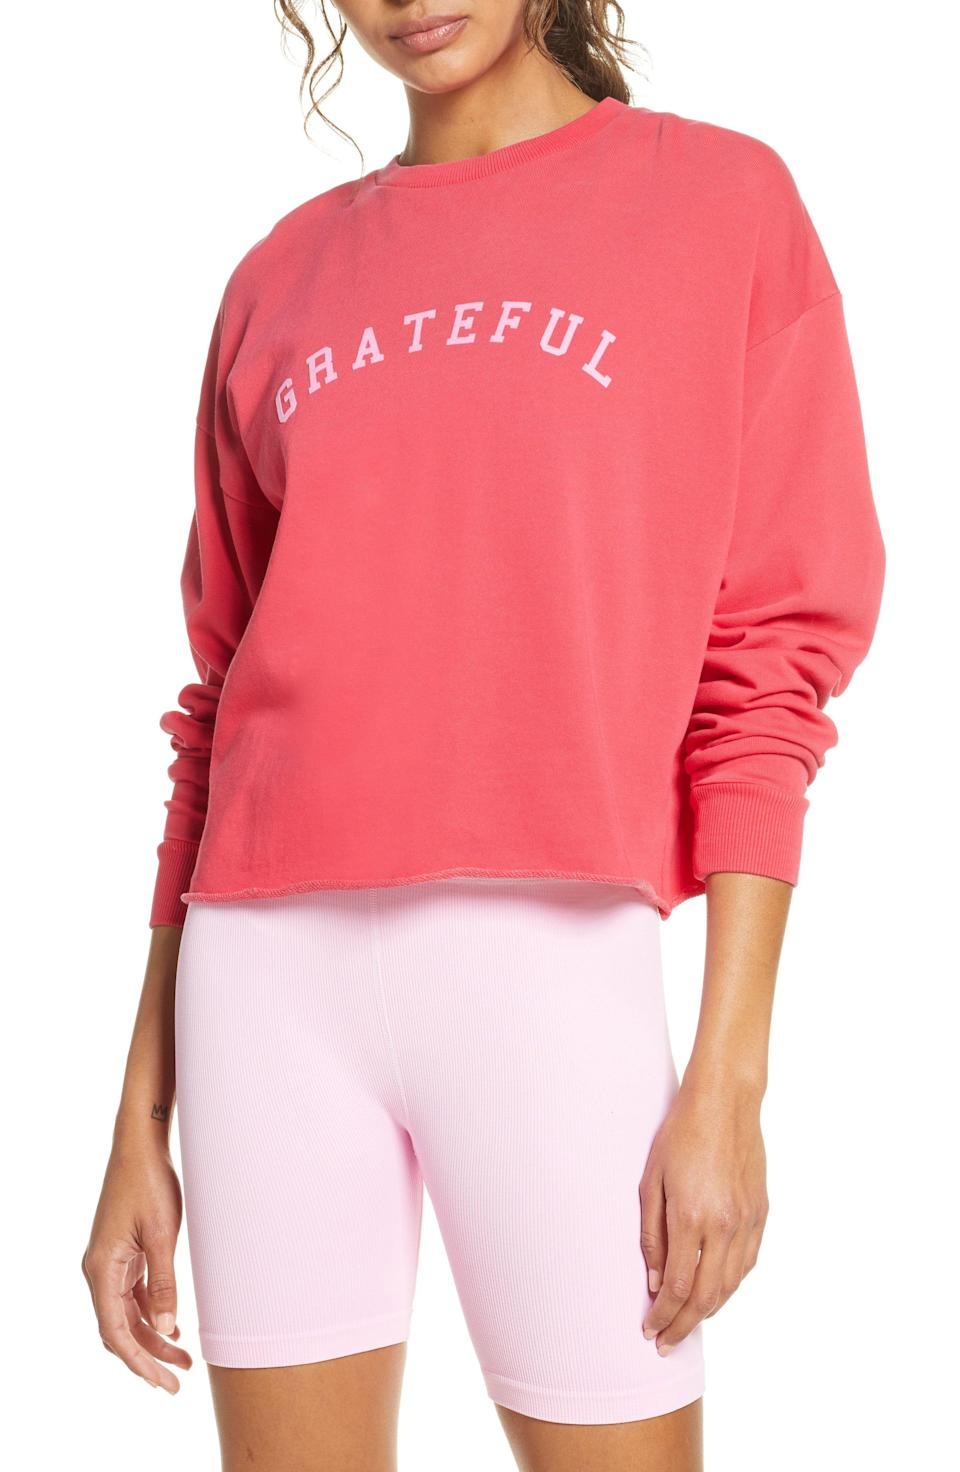 """<p><strong>Spiritual Gangster</strong></p><p>nordstrom.com</p><p><strong>$78.00</strong></p><p><a href=""""https://go.redirectingat.com?id=74968X1596630&url=https%3A%2F%2Fwww.nordstrom.com%2Fs%2Fspiritual-gangster-grateful-mazzy-sweatshirt%2F5595844&sref=https%3A%2F%2Fwww.womenshealthmag.com%2Ffitness%2Fg19990274%2Fgifts-for-fitness-fanatics%2F"""" rel=""""nofollow noopener"""" target=""""_blank"""" data-ylk=""""slk:Shop Now"""" class=""""link rapid-noclick-resp"""">Shop Now</a></p><p>Your loved one is sure to be grateful for this ultra-cozy sweatshirt that's perfect for throwing on post-gym or fitness class. Check out the rest of the gear from the <a href=""""https://www.nordstrom.com/brands/spiritual-gangster--11319?origin=productBrandLink"""" rel=""""nofollow noopener"""" target=""""_blank"""" data-ylk=""""slk:brand's collection"""" class=""""link rapid-noclick-resp"""">brand's collection</a> for extra gifting inspo. </p>"""